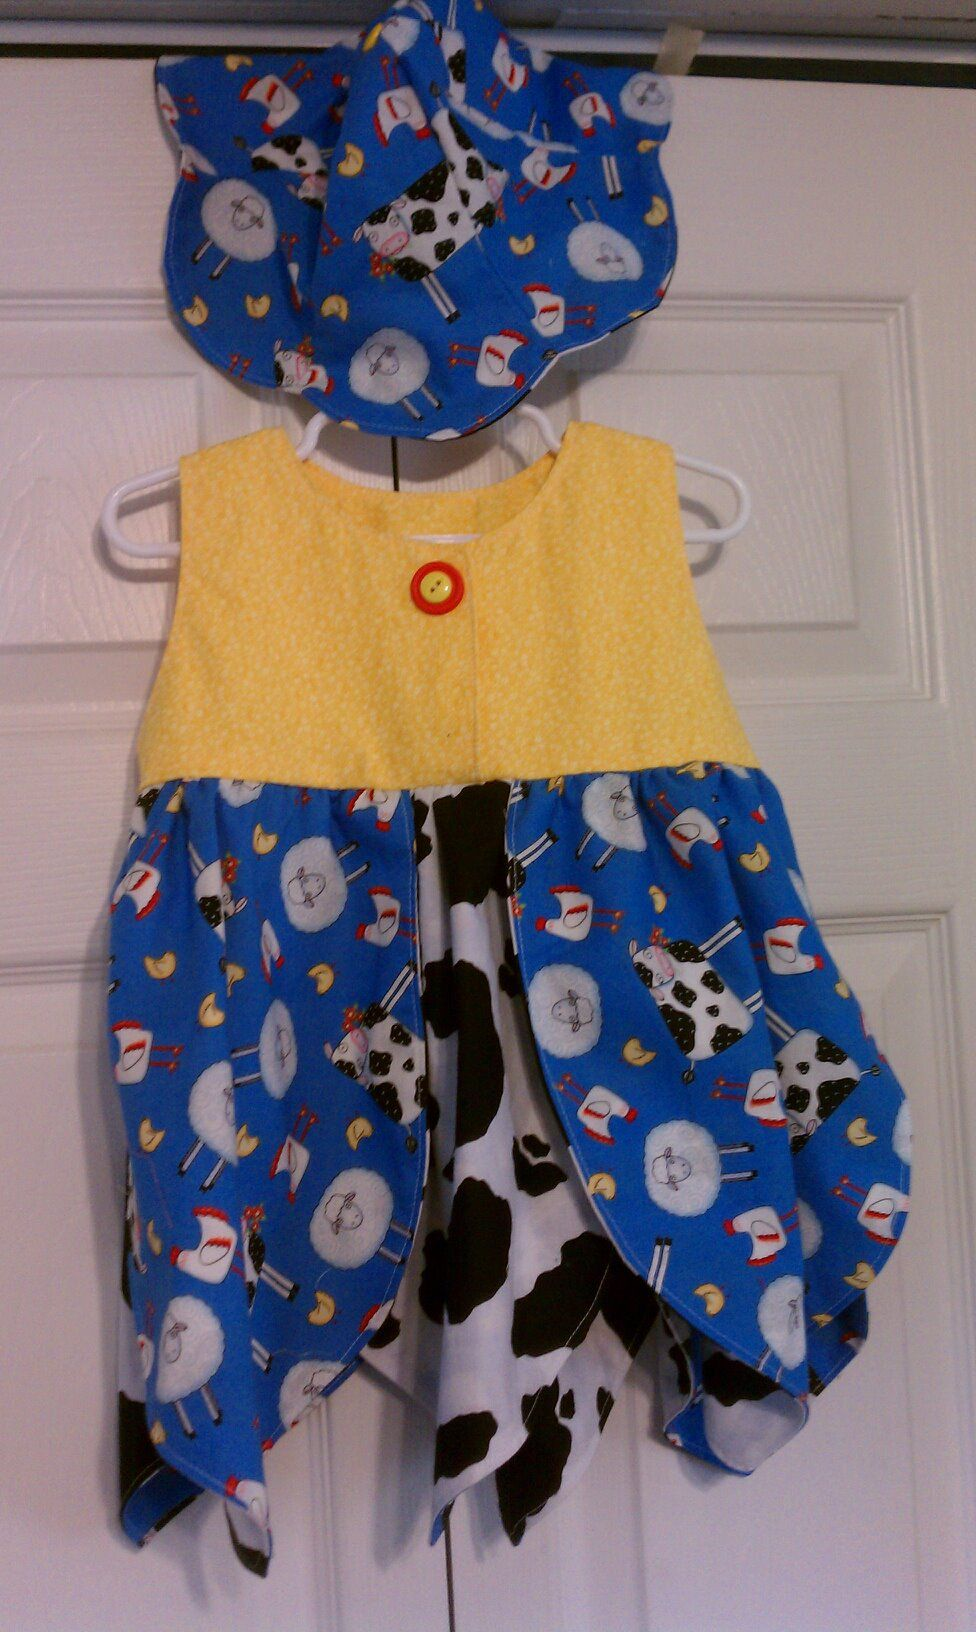 Size 2T Tulip Dress with hat - SOLD